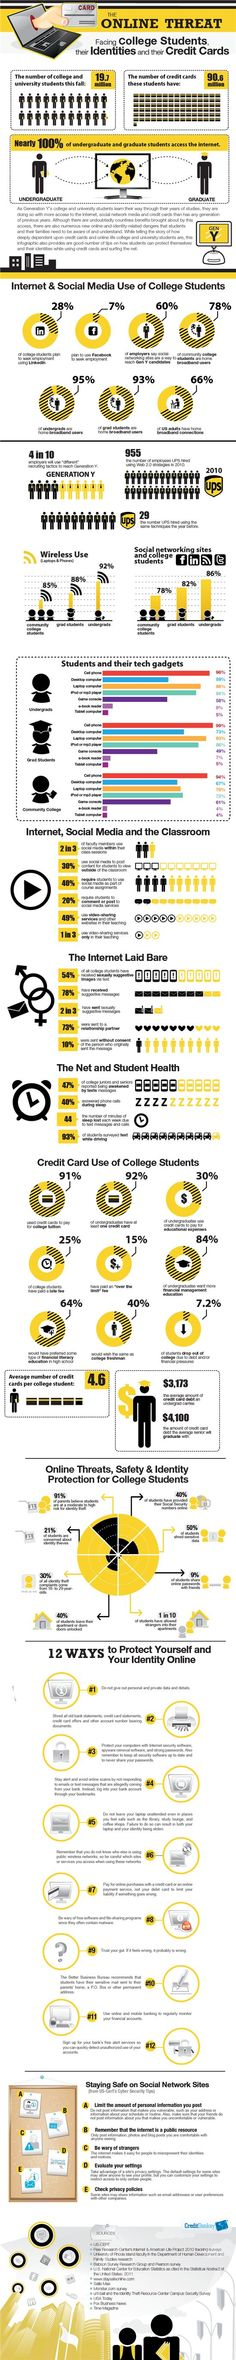 The Online Threat: Facing College Students, Their Identities and Their Credit Cards